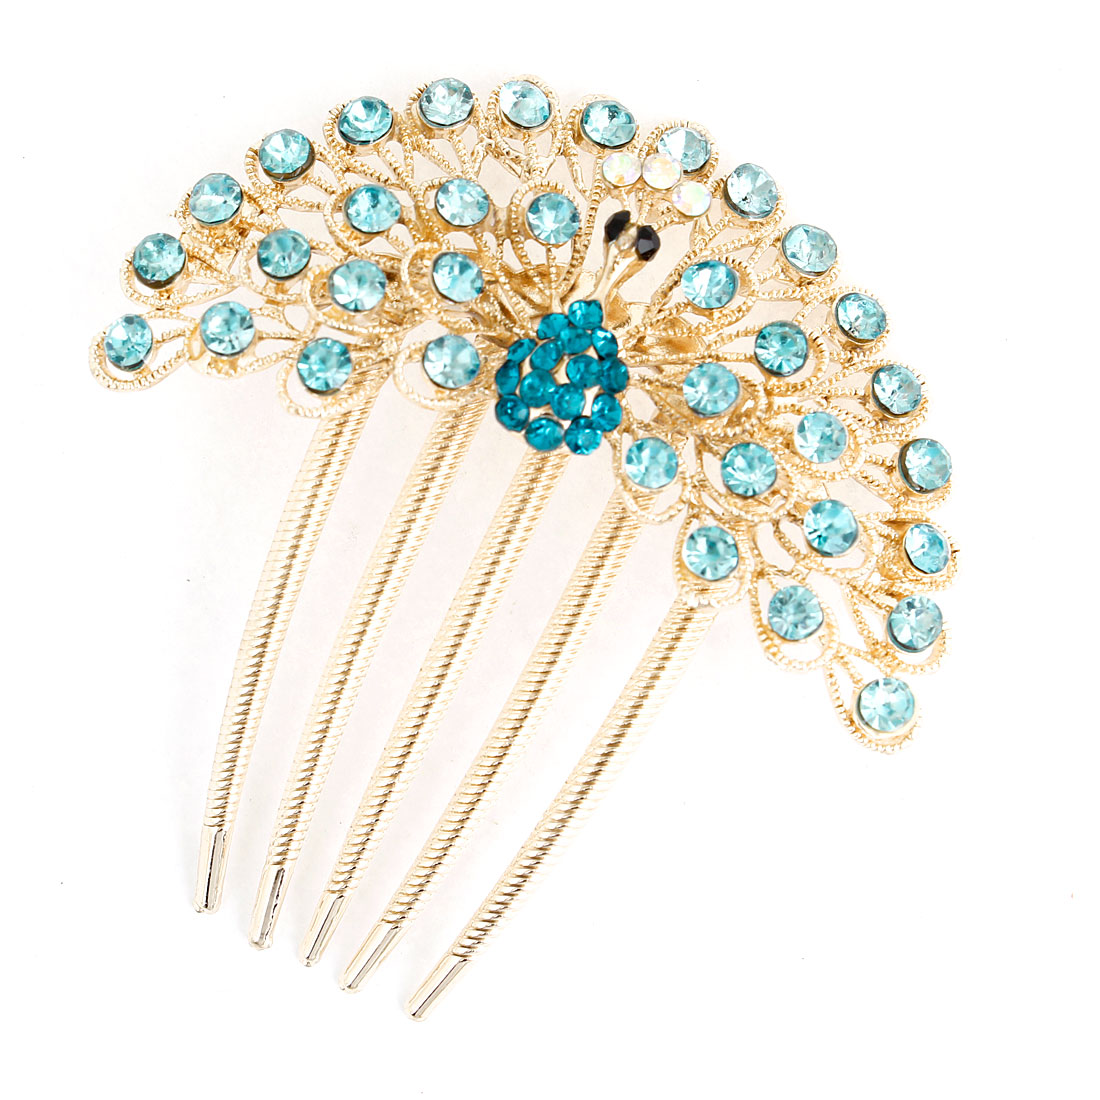 Lady Turquoise Glittery Plastic Rhinestone Decoration Comb Hairpin Gold Tone